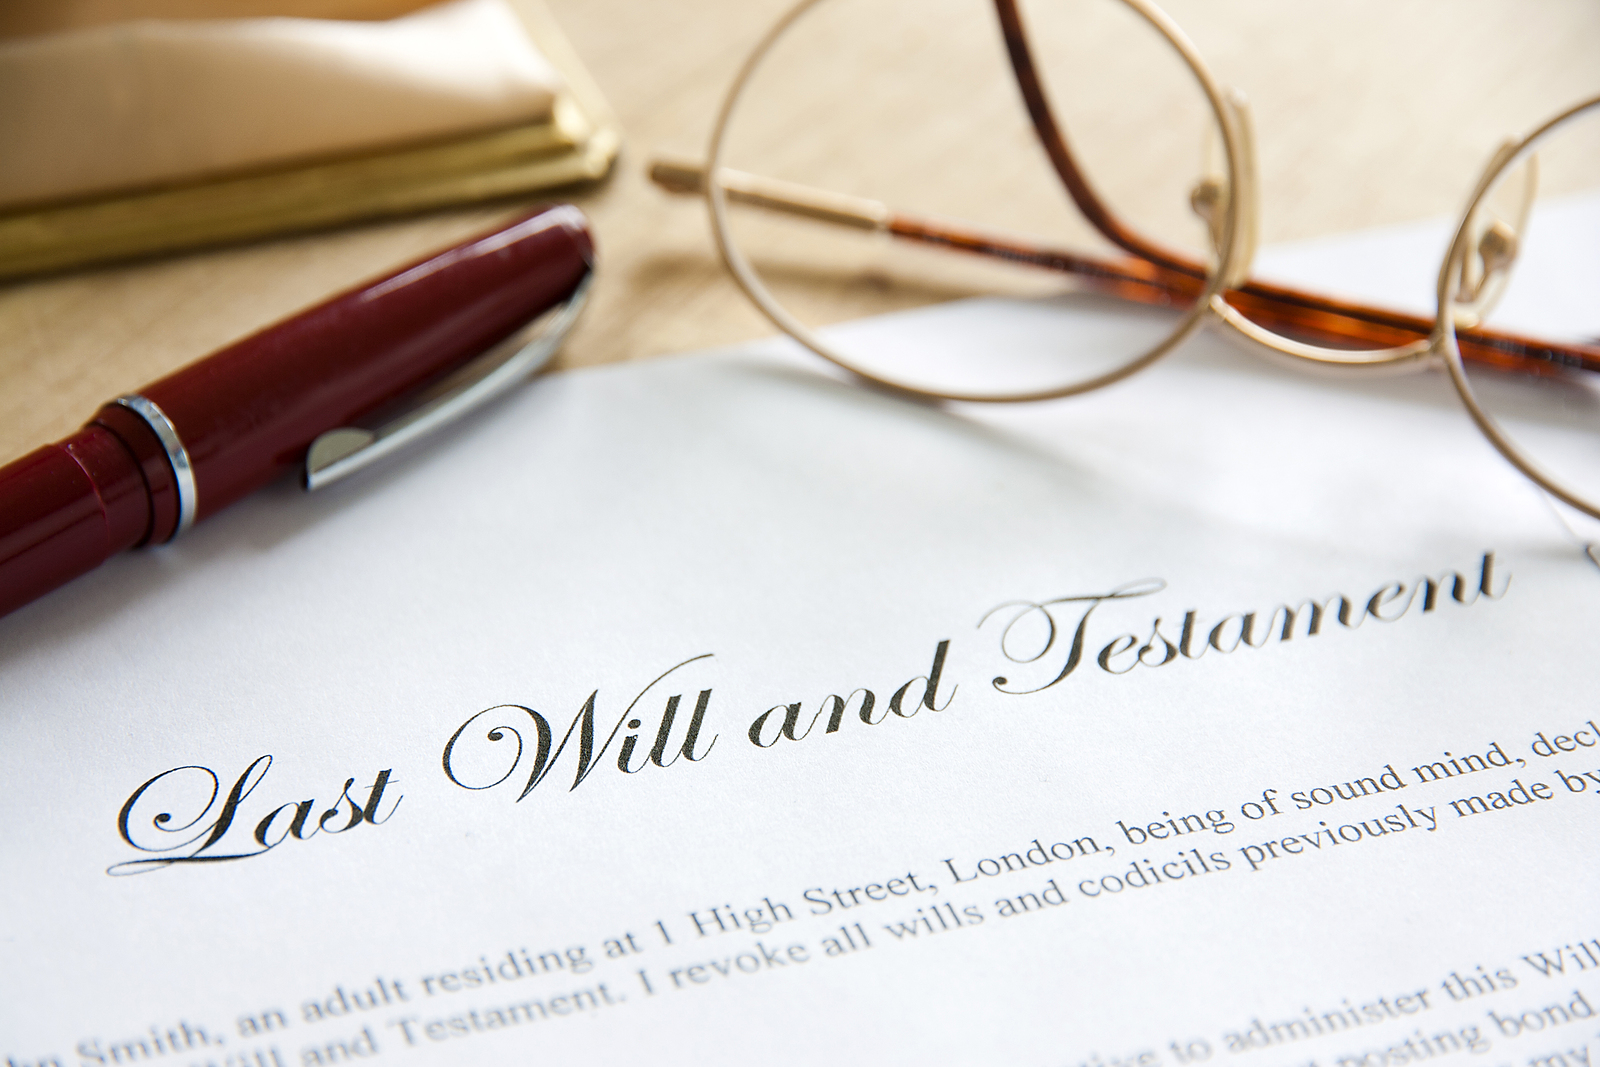 Wills and UAE law